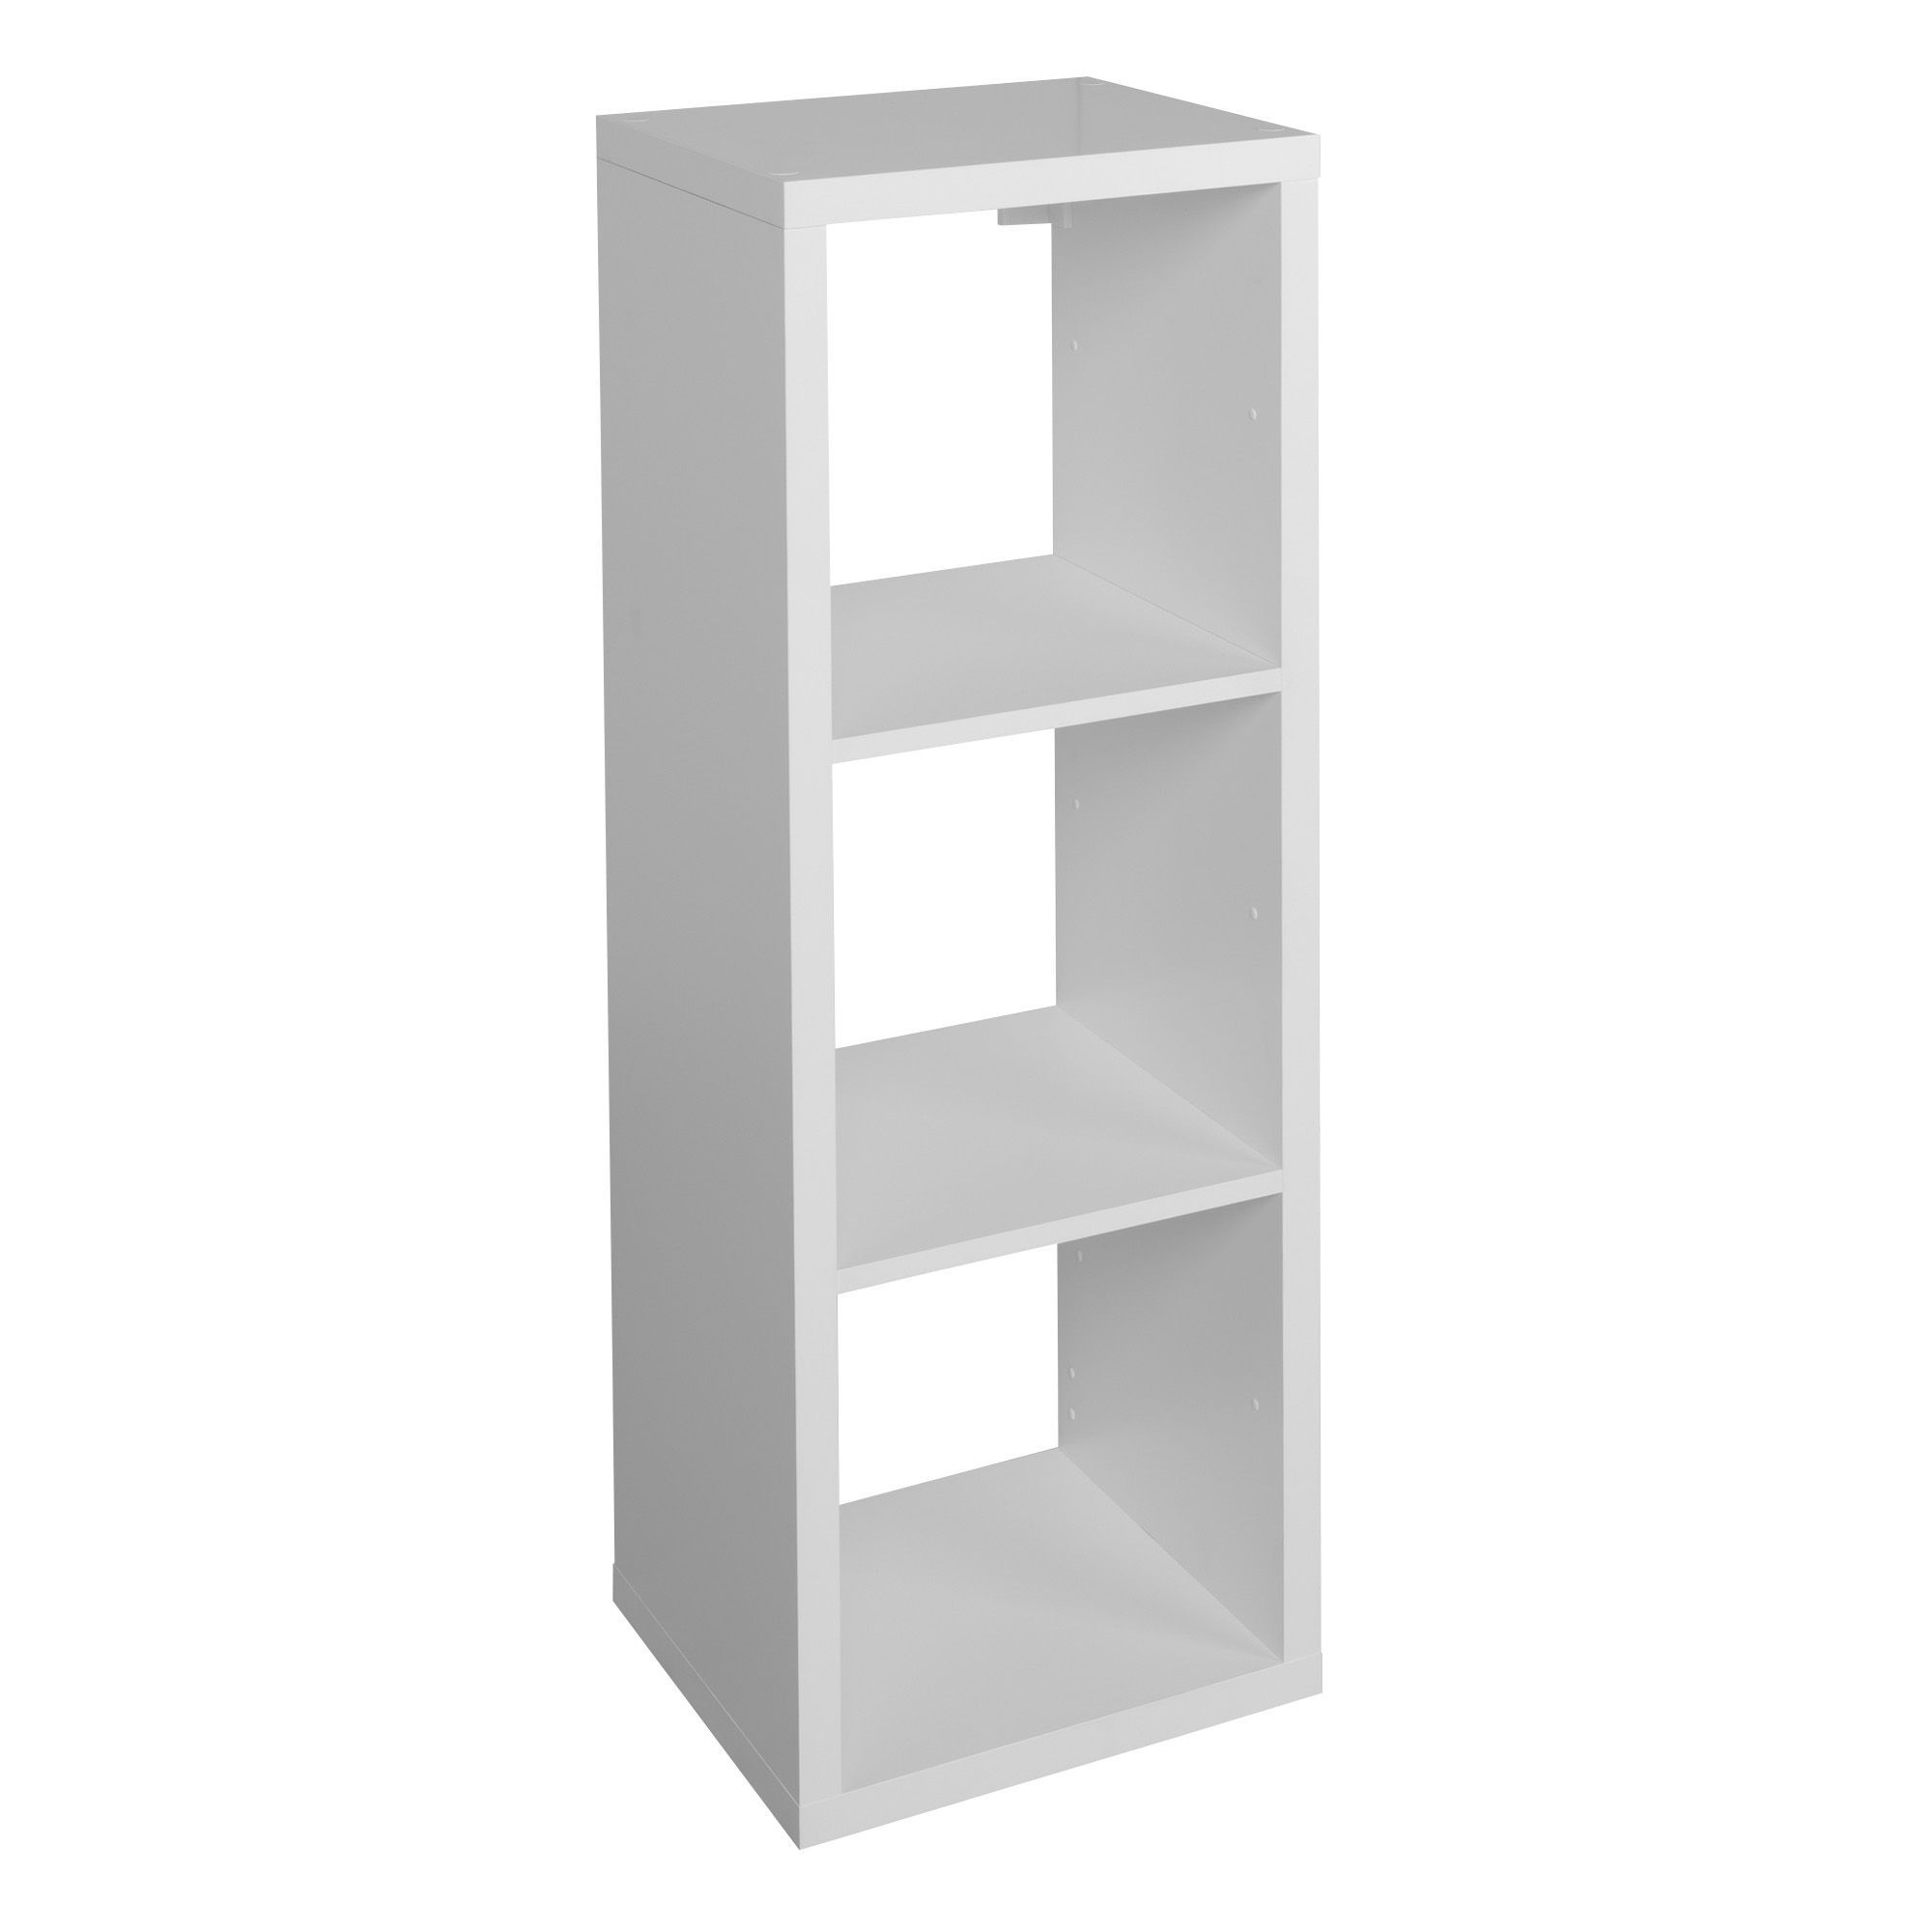 form konnect white 4 cube shelving unit h 1372mm w 352mm departments diy at b q. Black Bedroom Furniture Sets. Home Design Ideas